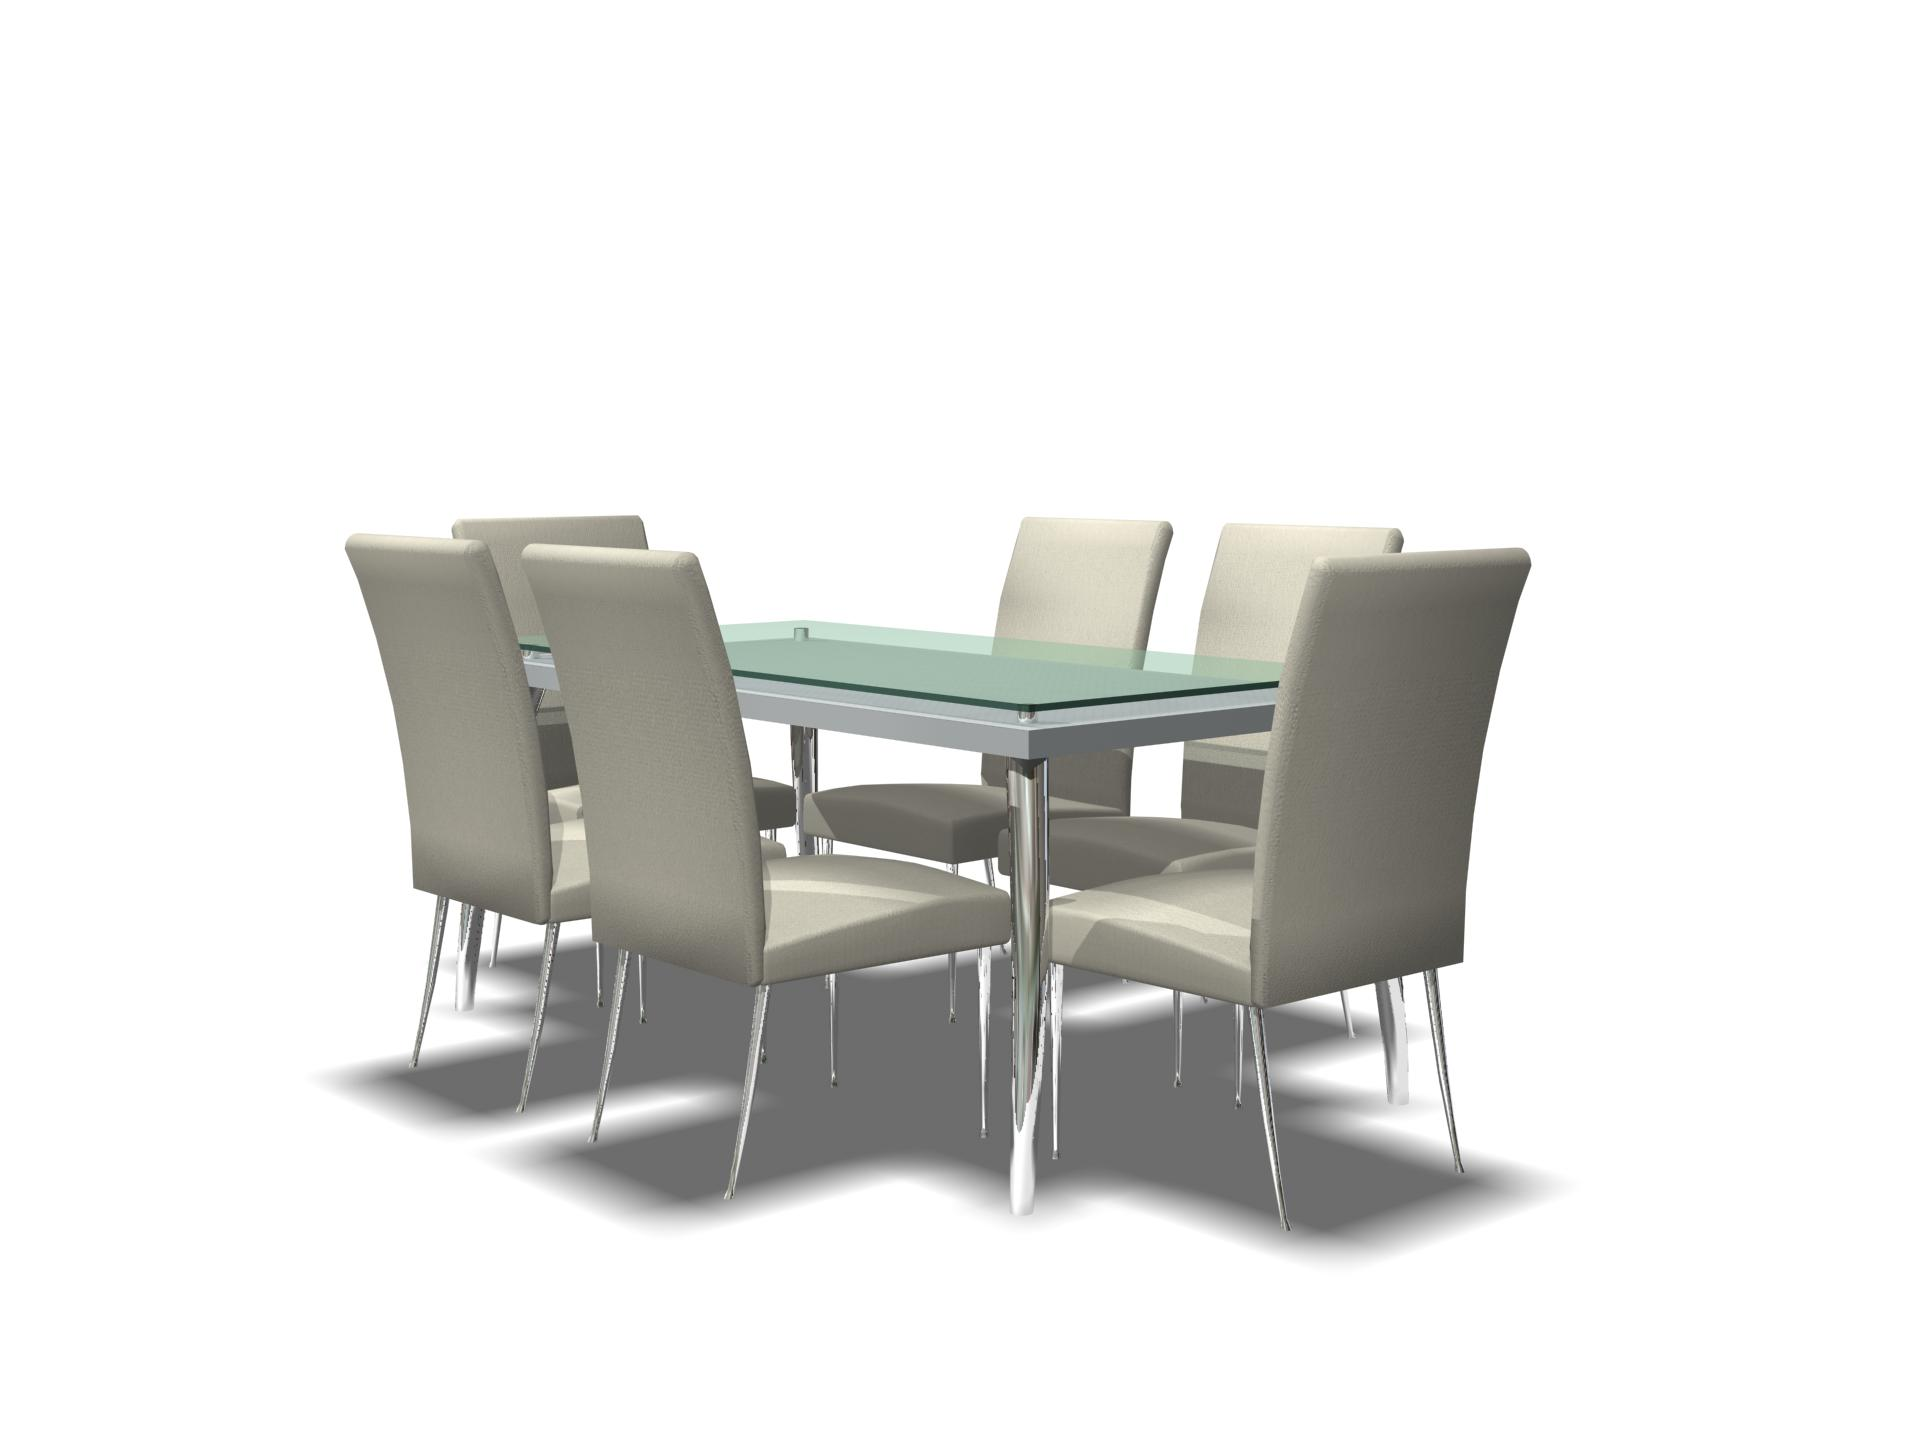 Furniture- table 009 – table 3D Model